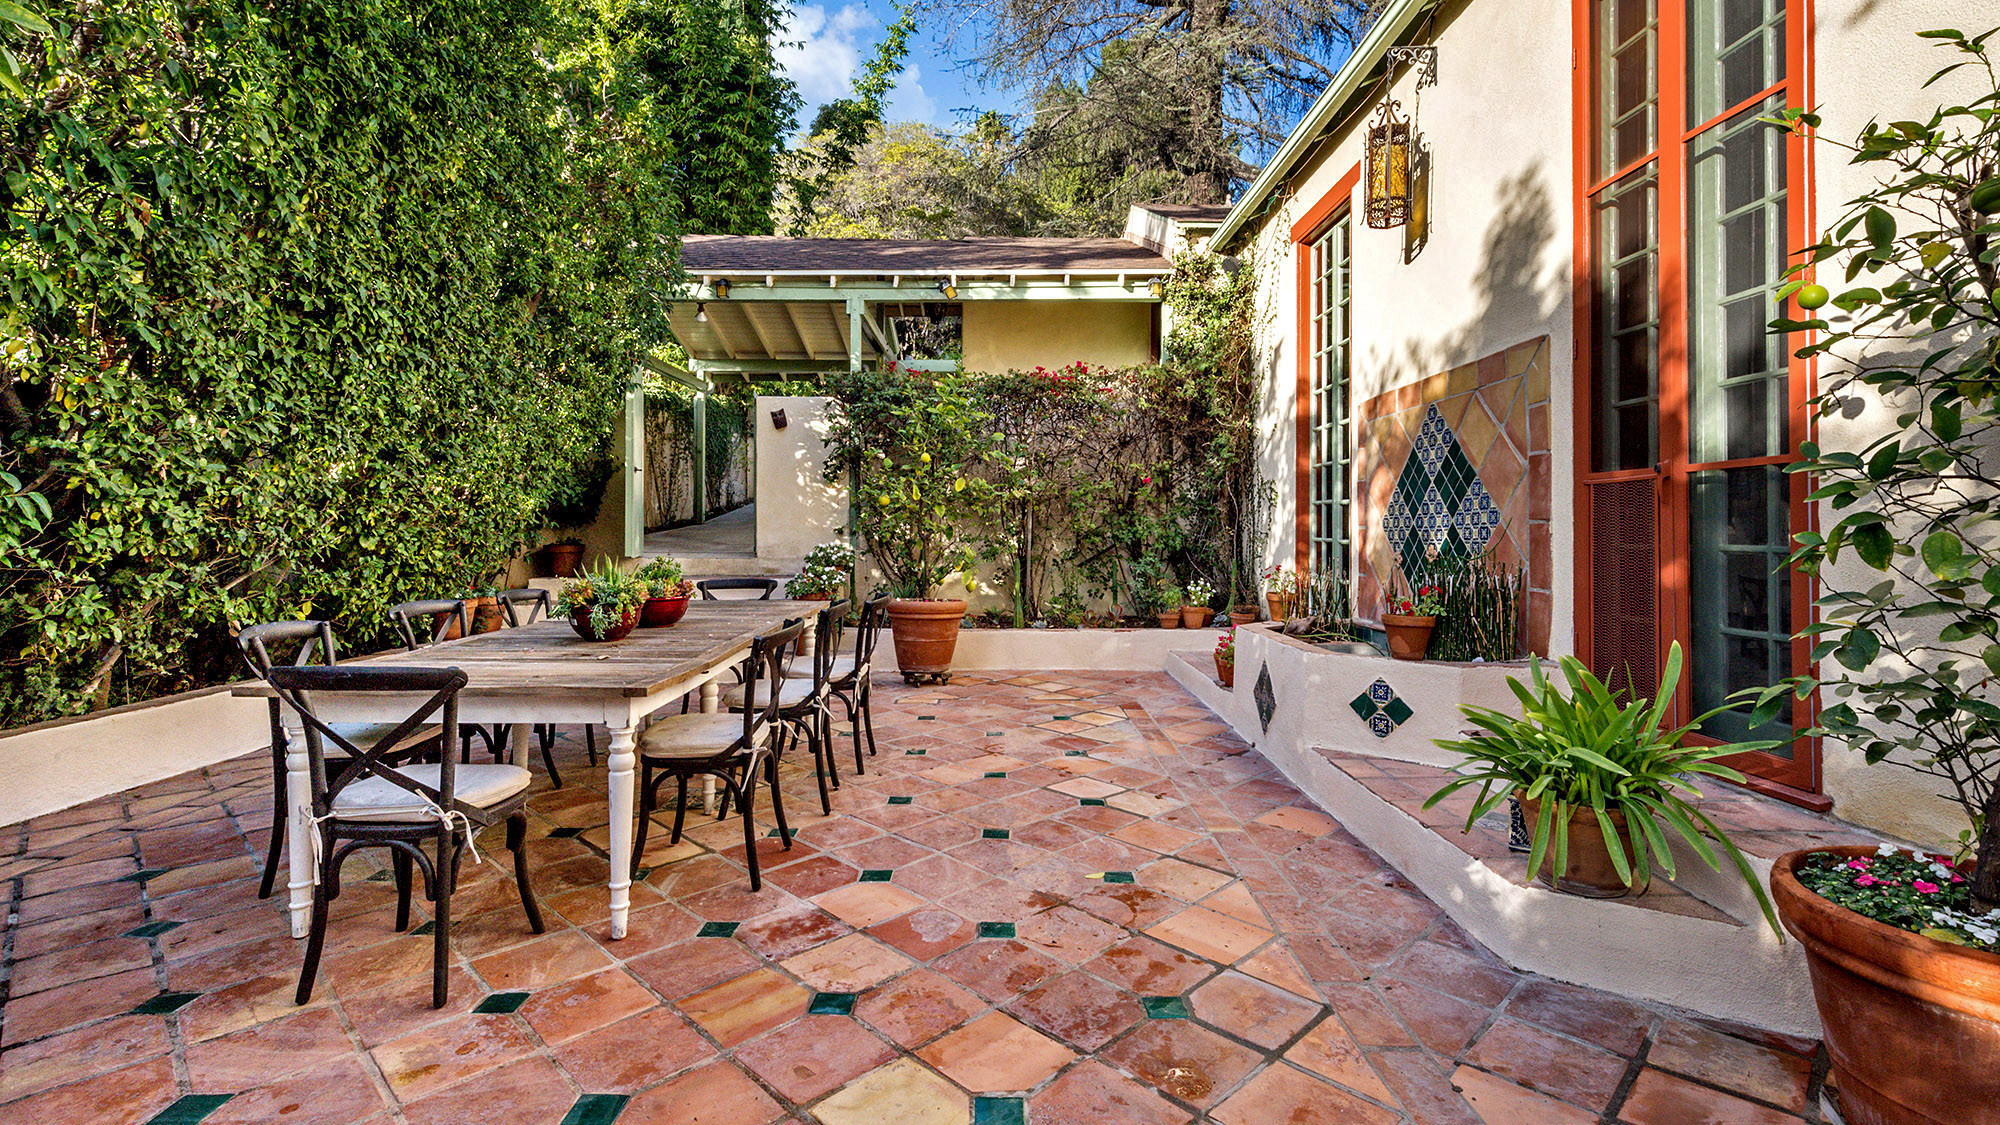 Nathanael west 39 s hollywood home is for sale la times for Hollywood home for sale